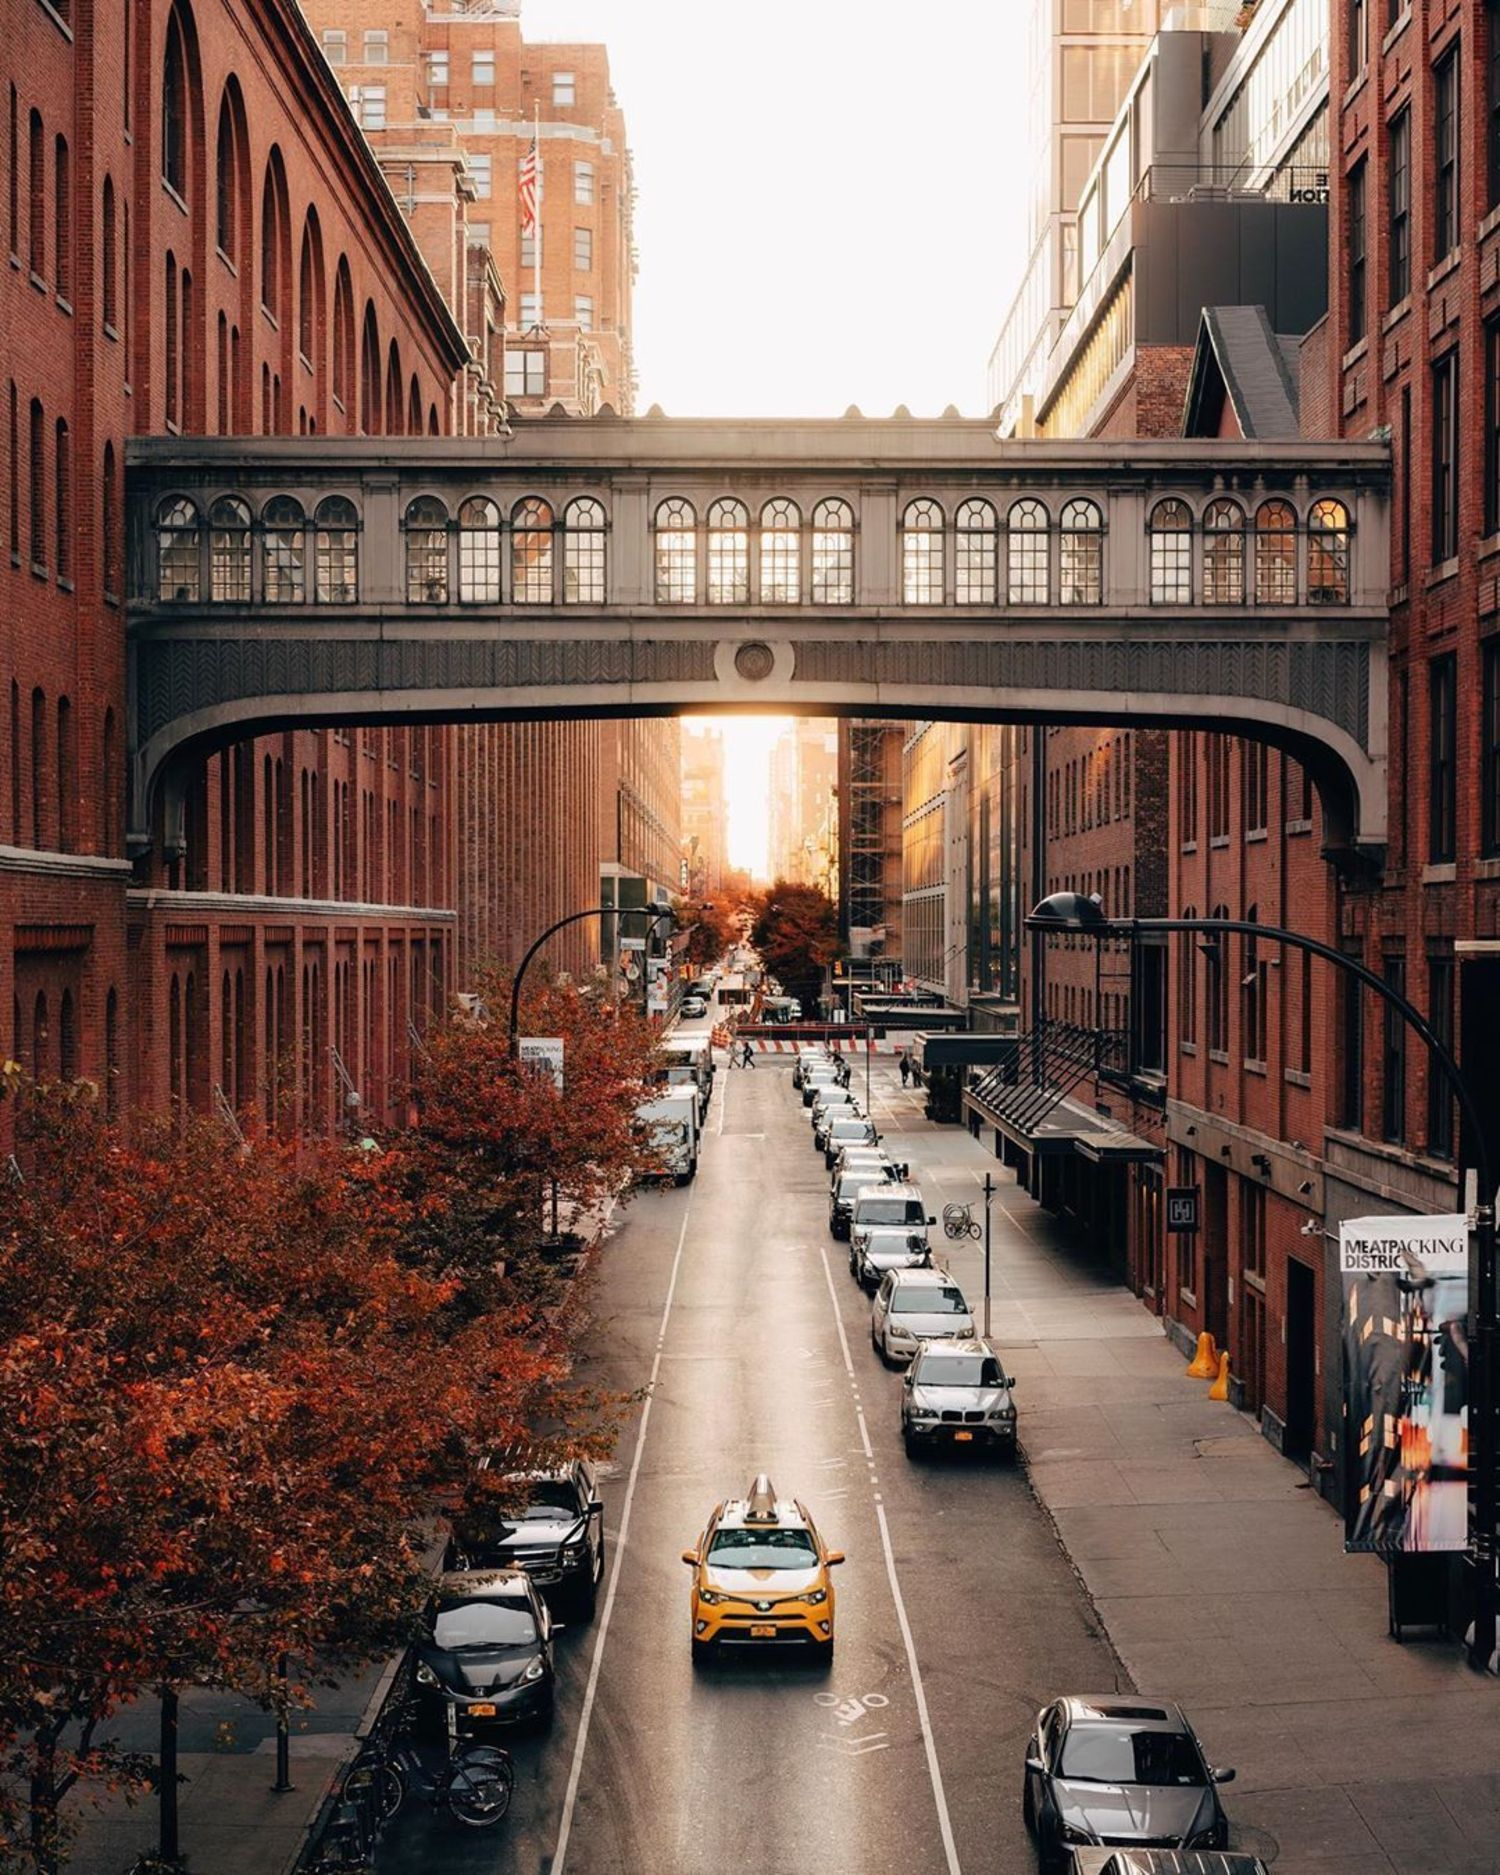 West 15th Street from The High Line, Chelsea, Manhattan